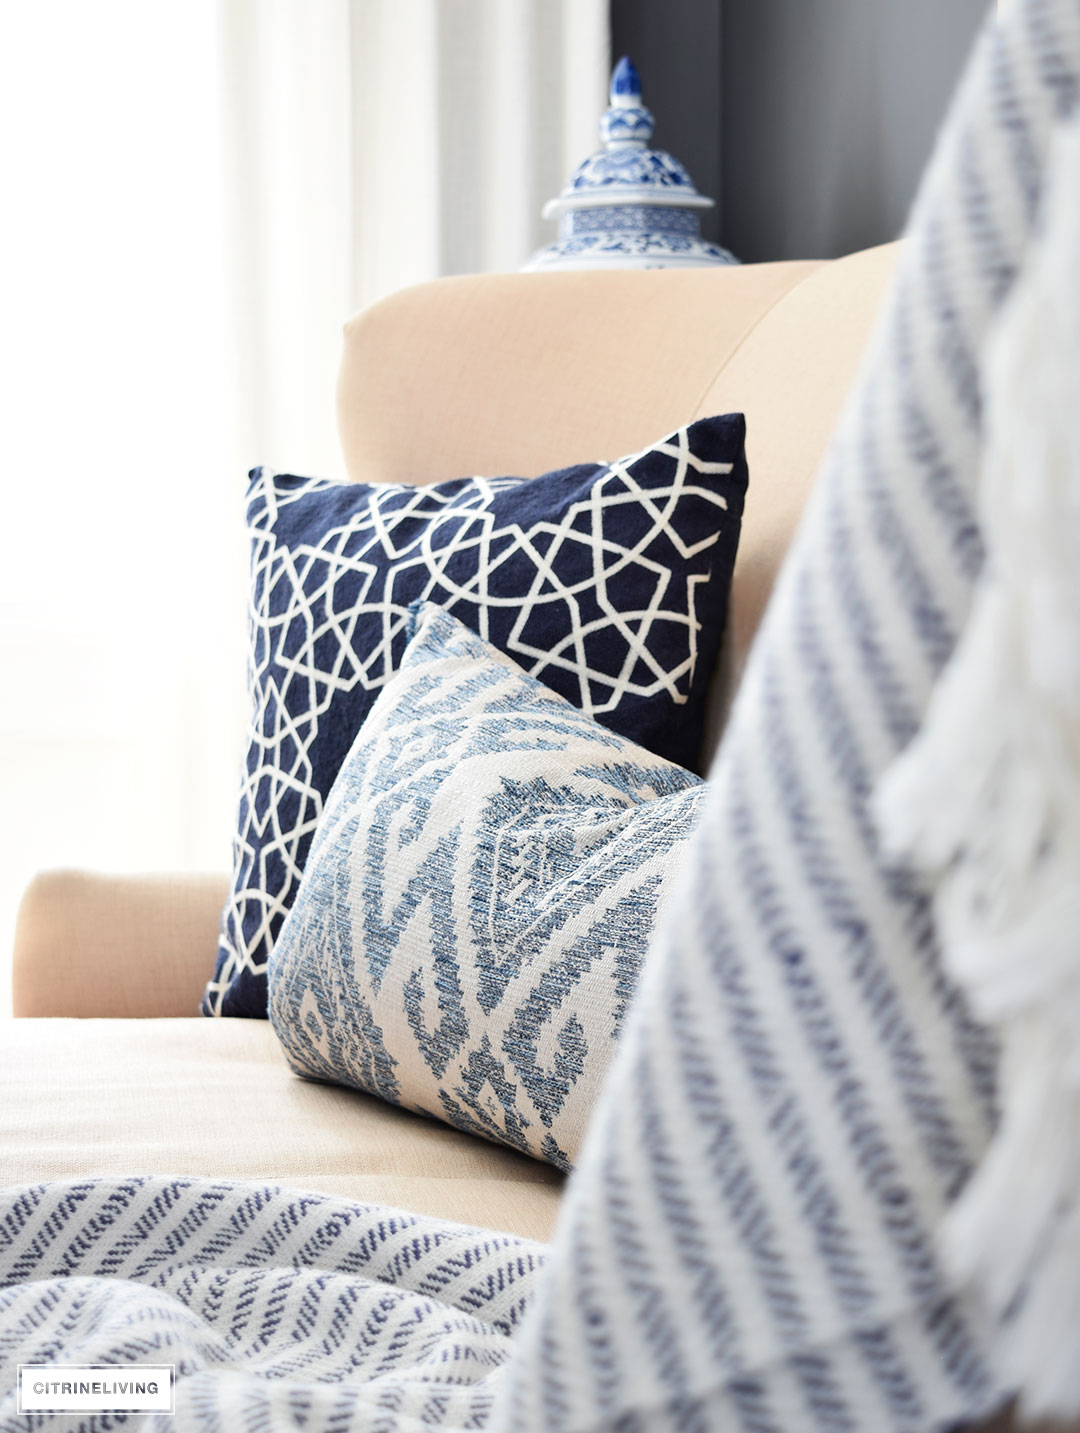 Spring decor - layers of blue and white pattern and texture is perfect for the season.